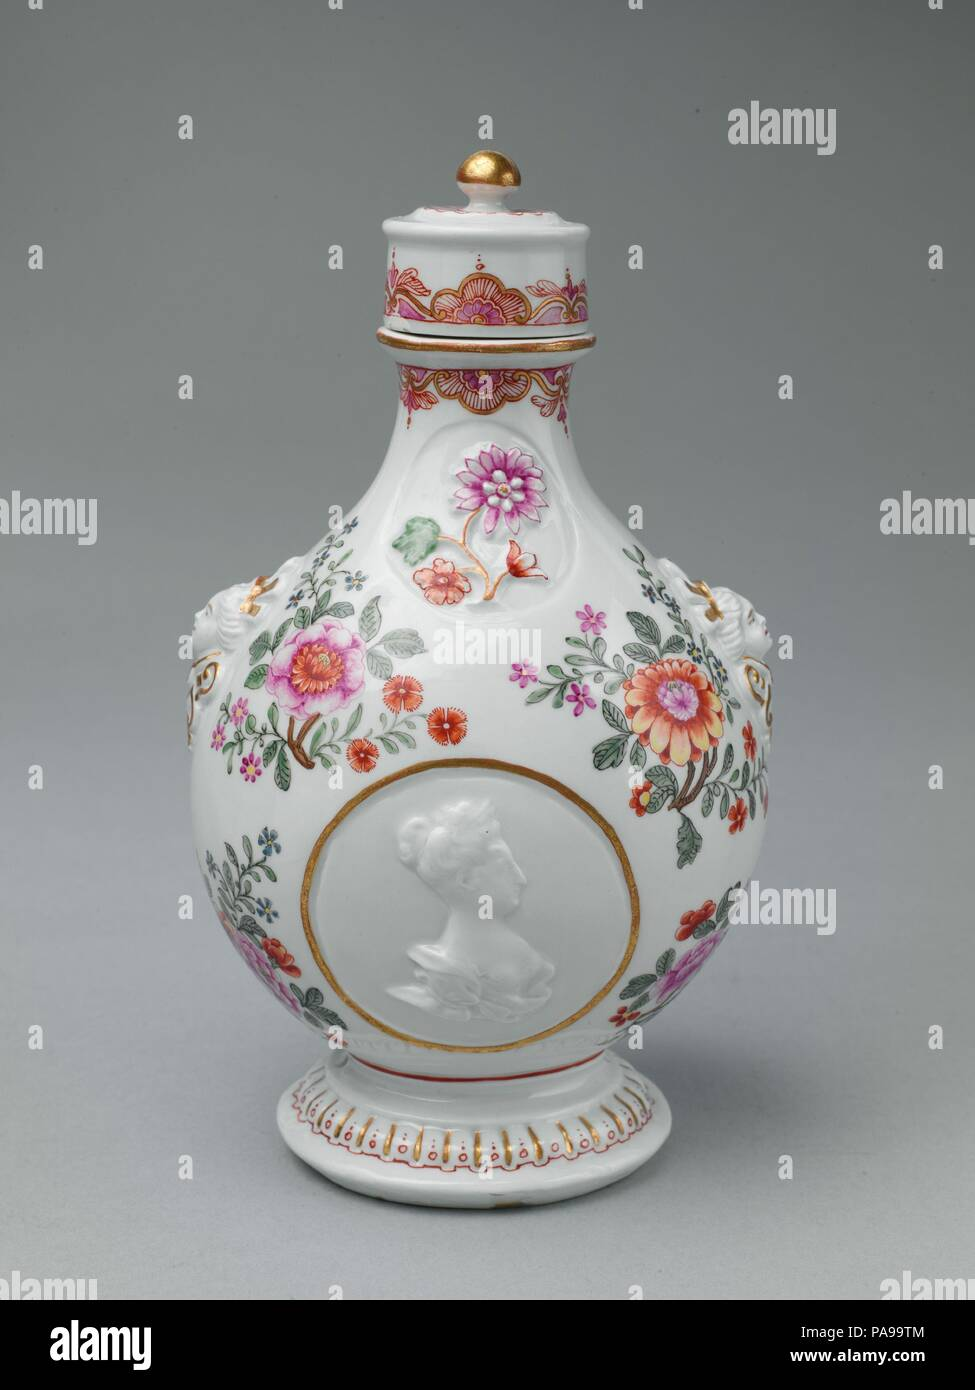 Pilgrim bottle with cover. Culture: Austrian, Vienna. Dimensions: H. with cover 8-1/2 in. (21.6 cm.). Factory: Vienna. Factory director: Du Paquier period (1718-1744). Date: ca. 1725-30.  This bottle is decorated with low-relief portraits of the Habsburg Emperor Charles VI (1685-1740) and Empress Elizabeth (1691-1750), rulers of Austria. Museum: Metropolitan Museum of Art, New York, USA. - Stock Image